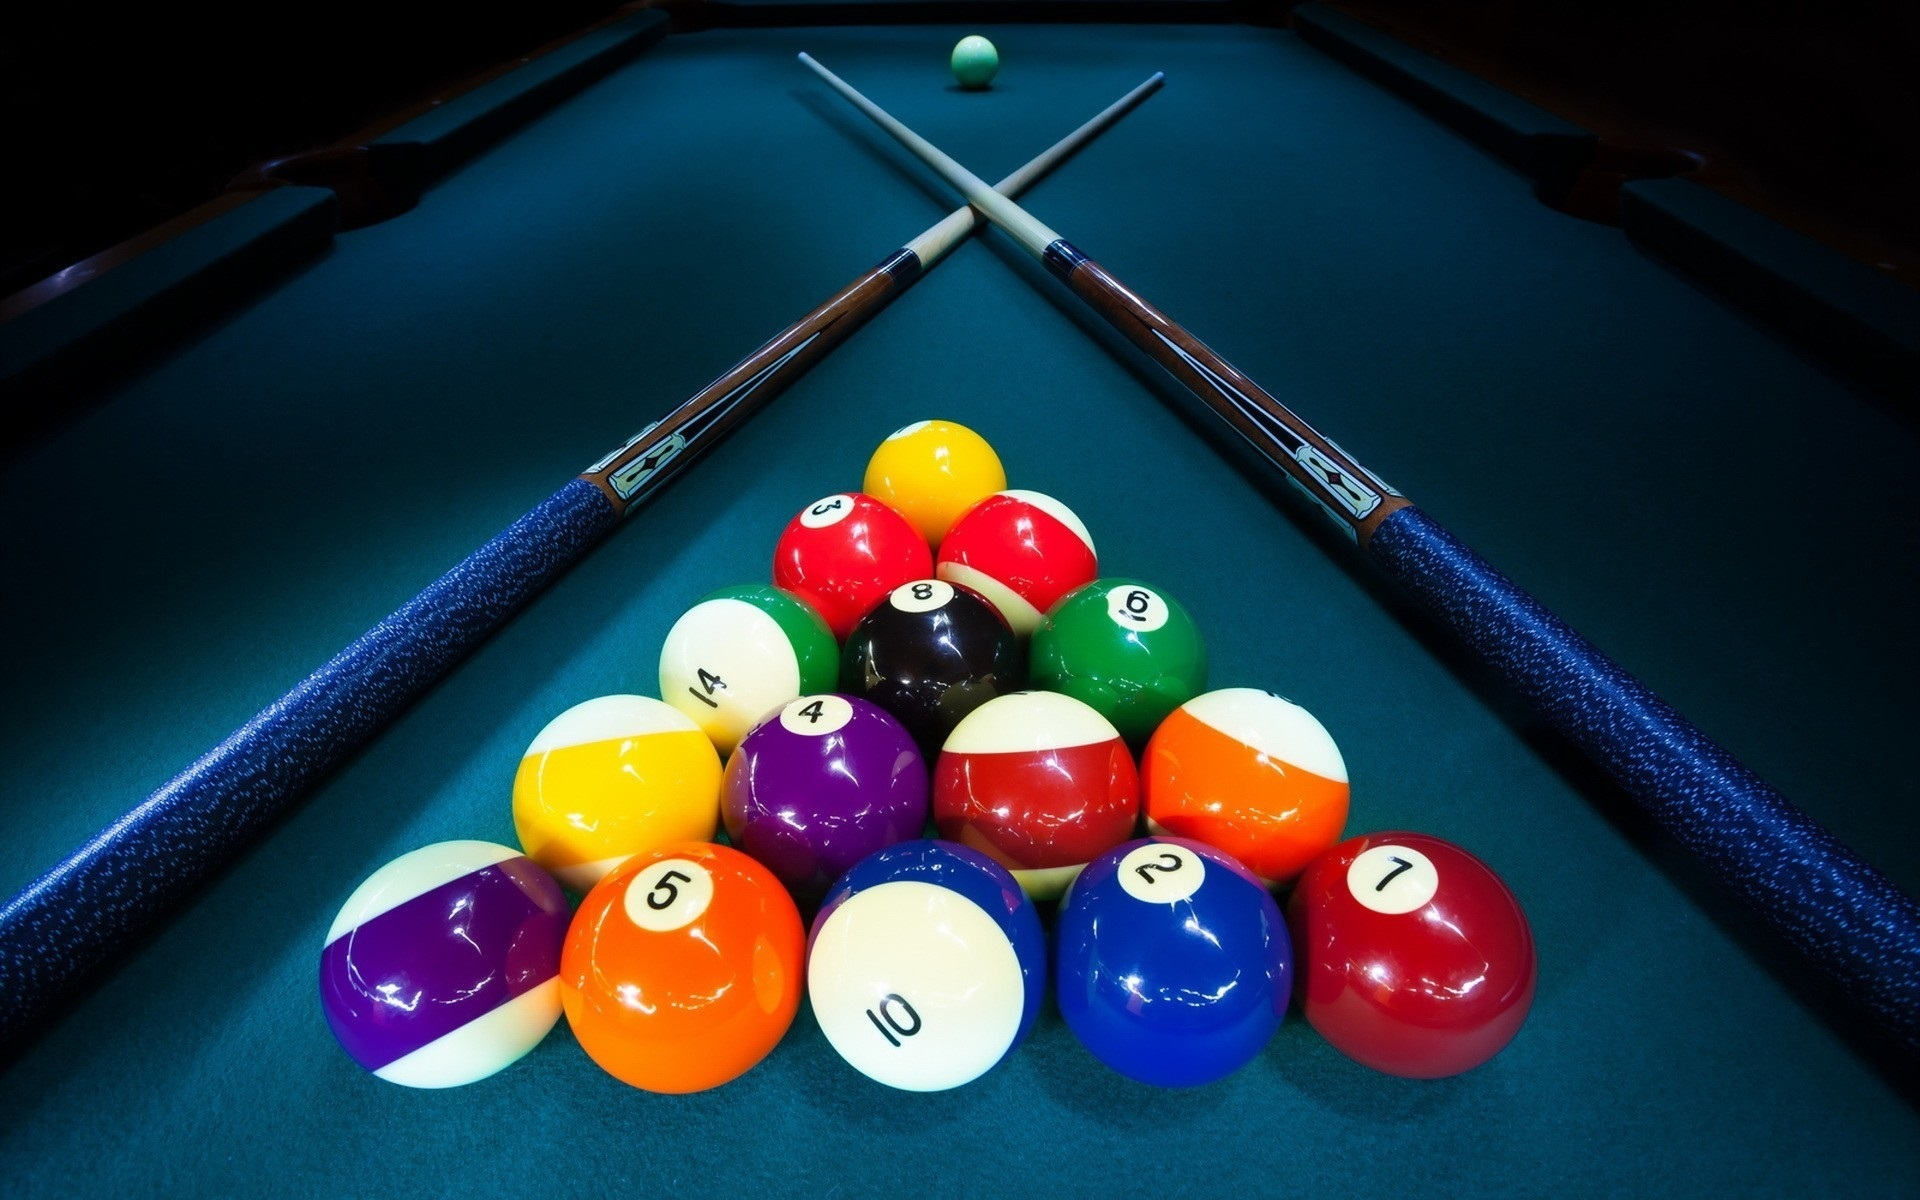 Rack Em' Up! A Brief History within the Billiard Ball